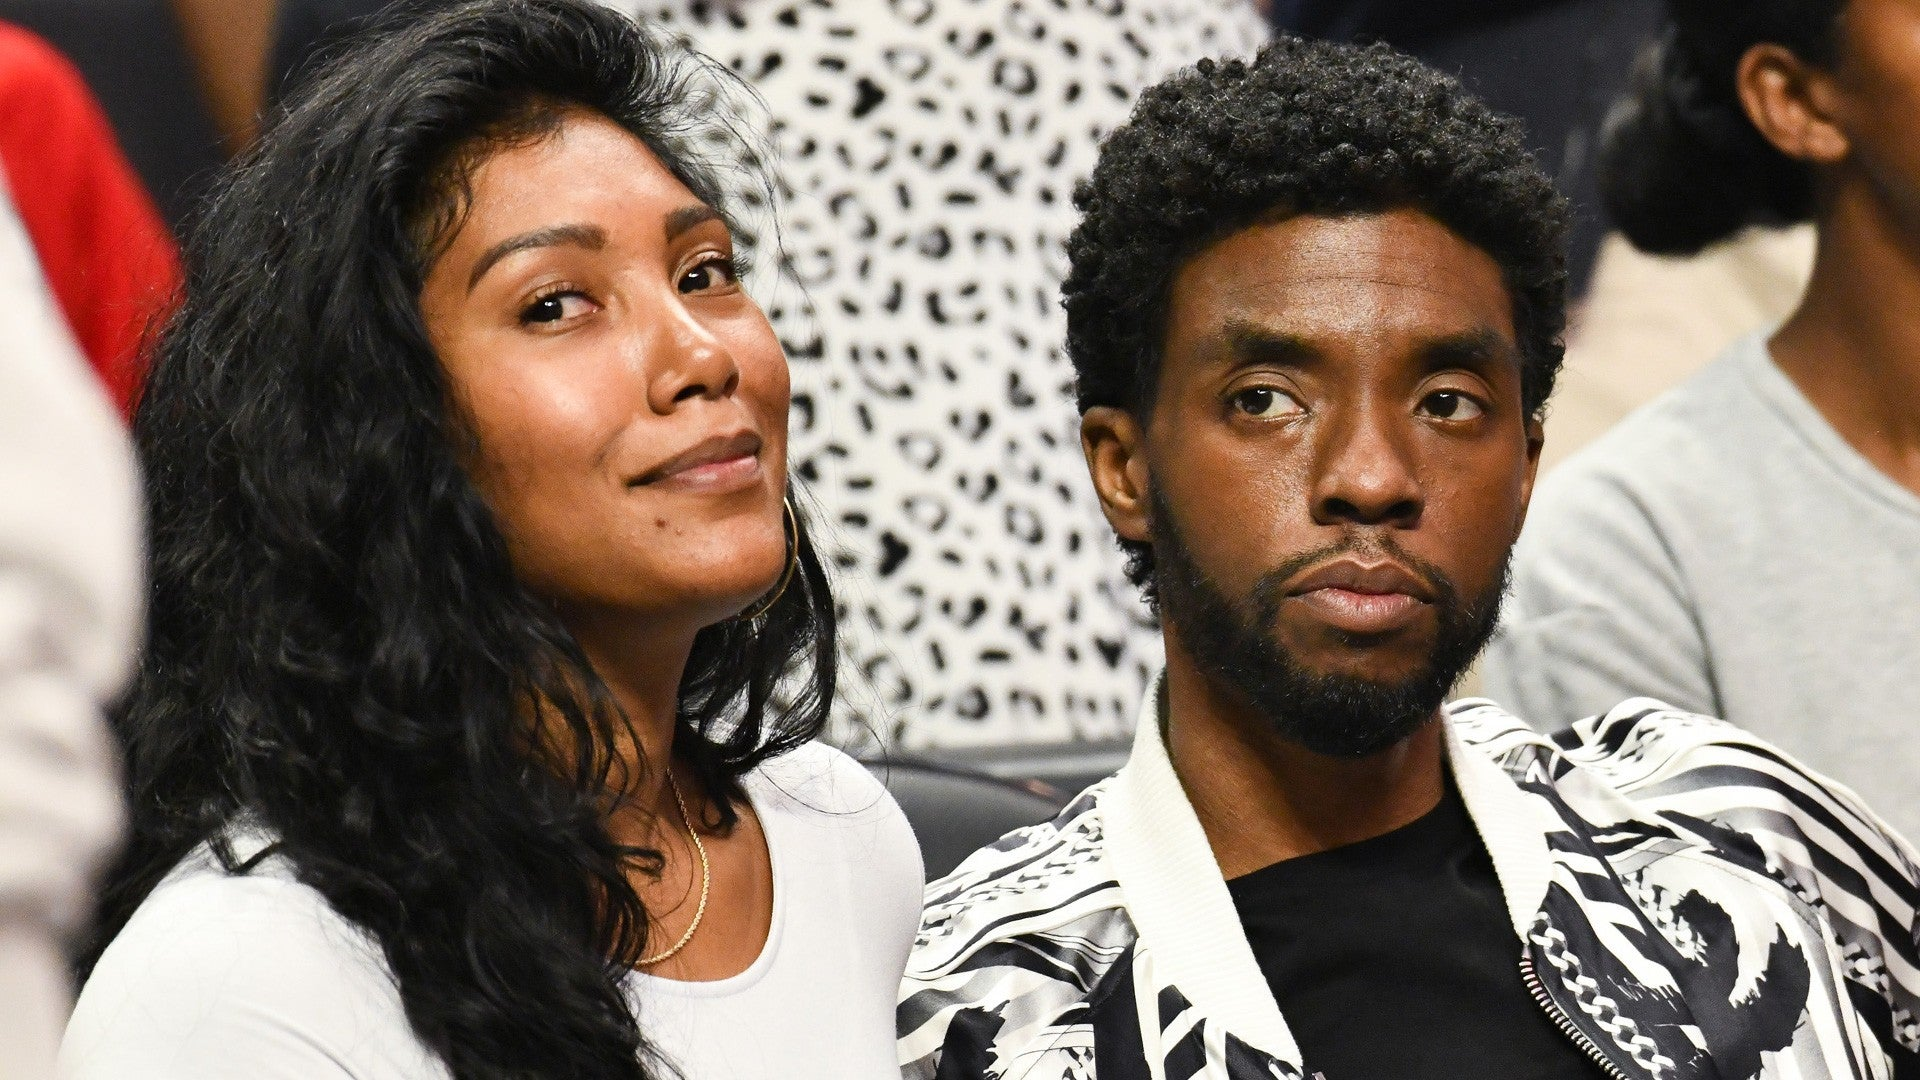 Denzel Washington Talks About The Way Chadwick Boseman's Wife Lovingly Watched Over Him While They Worked On His Last Film!